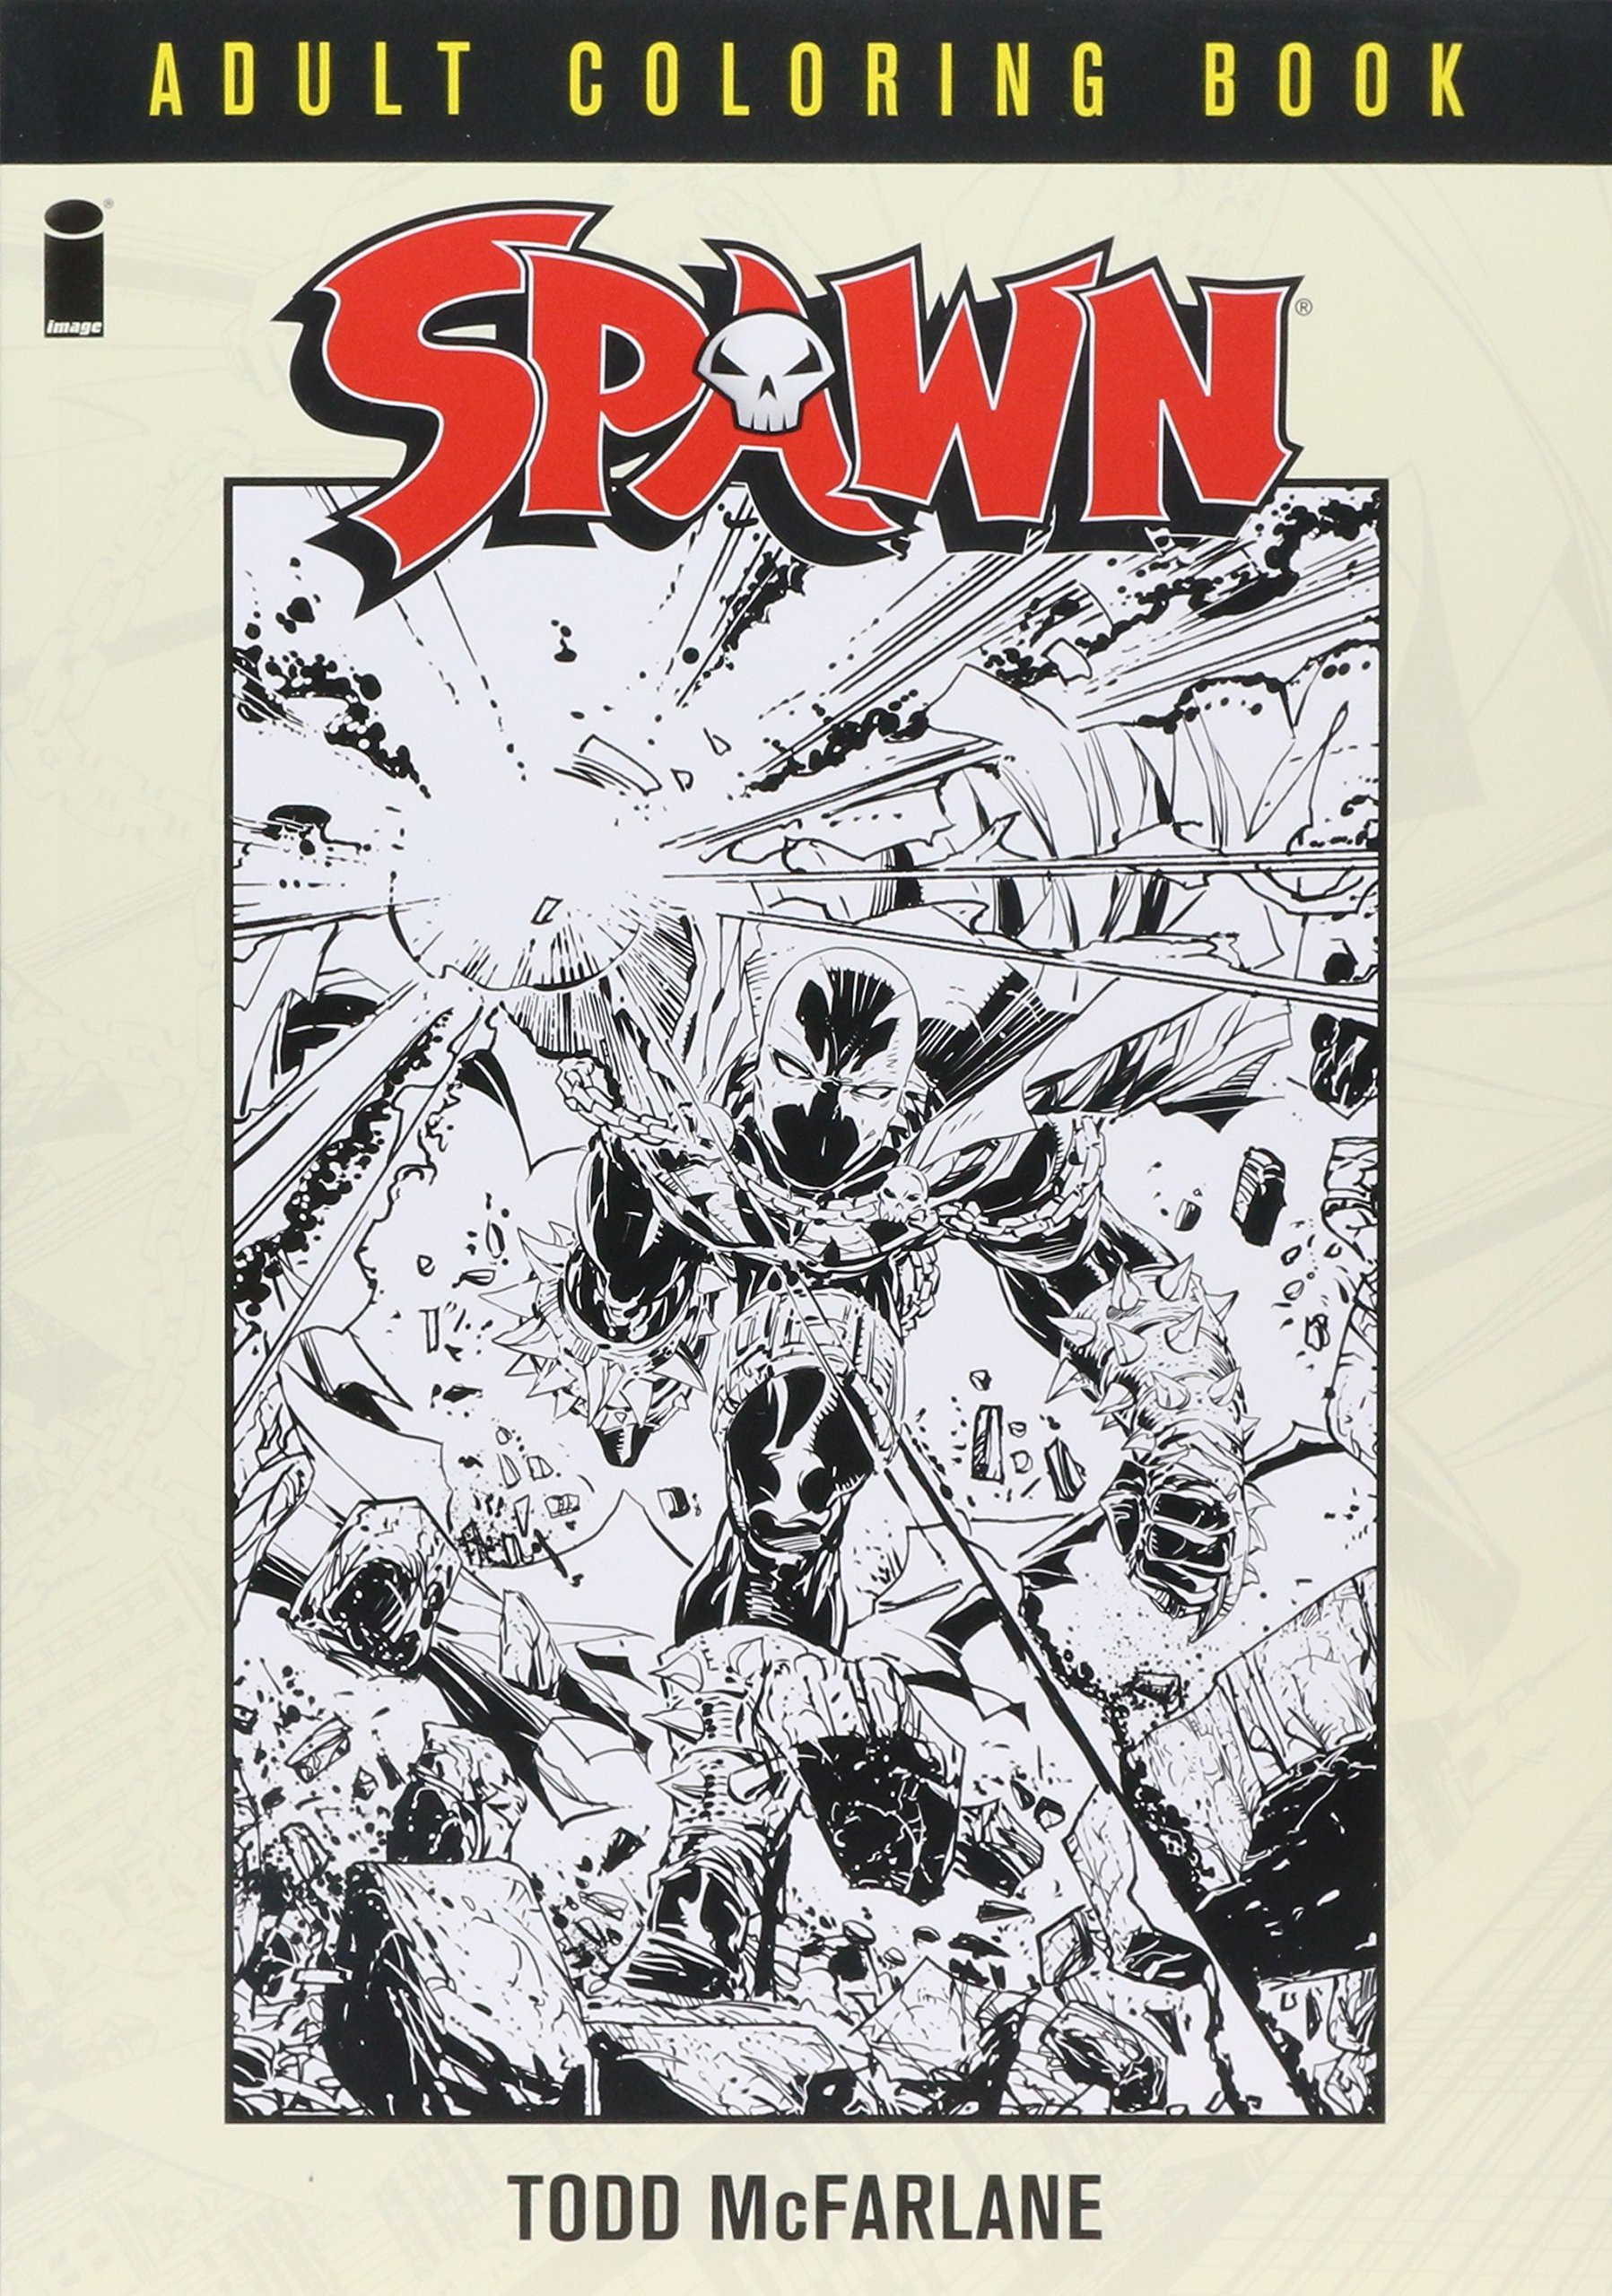 Spawn Coloring Book Todd McFarlane 9781632157850 Amazon Books